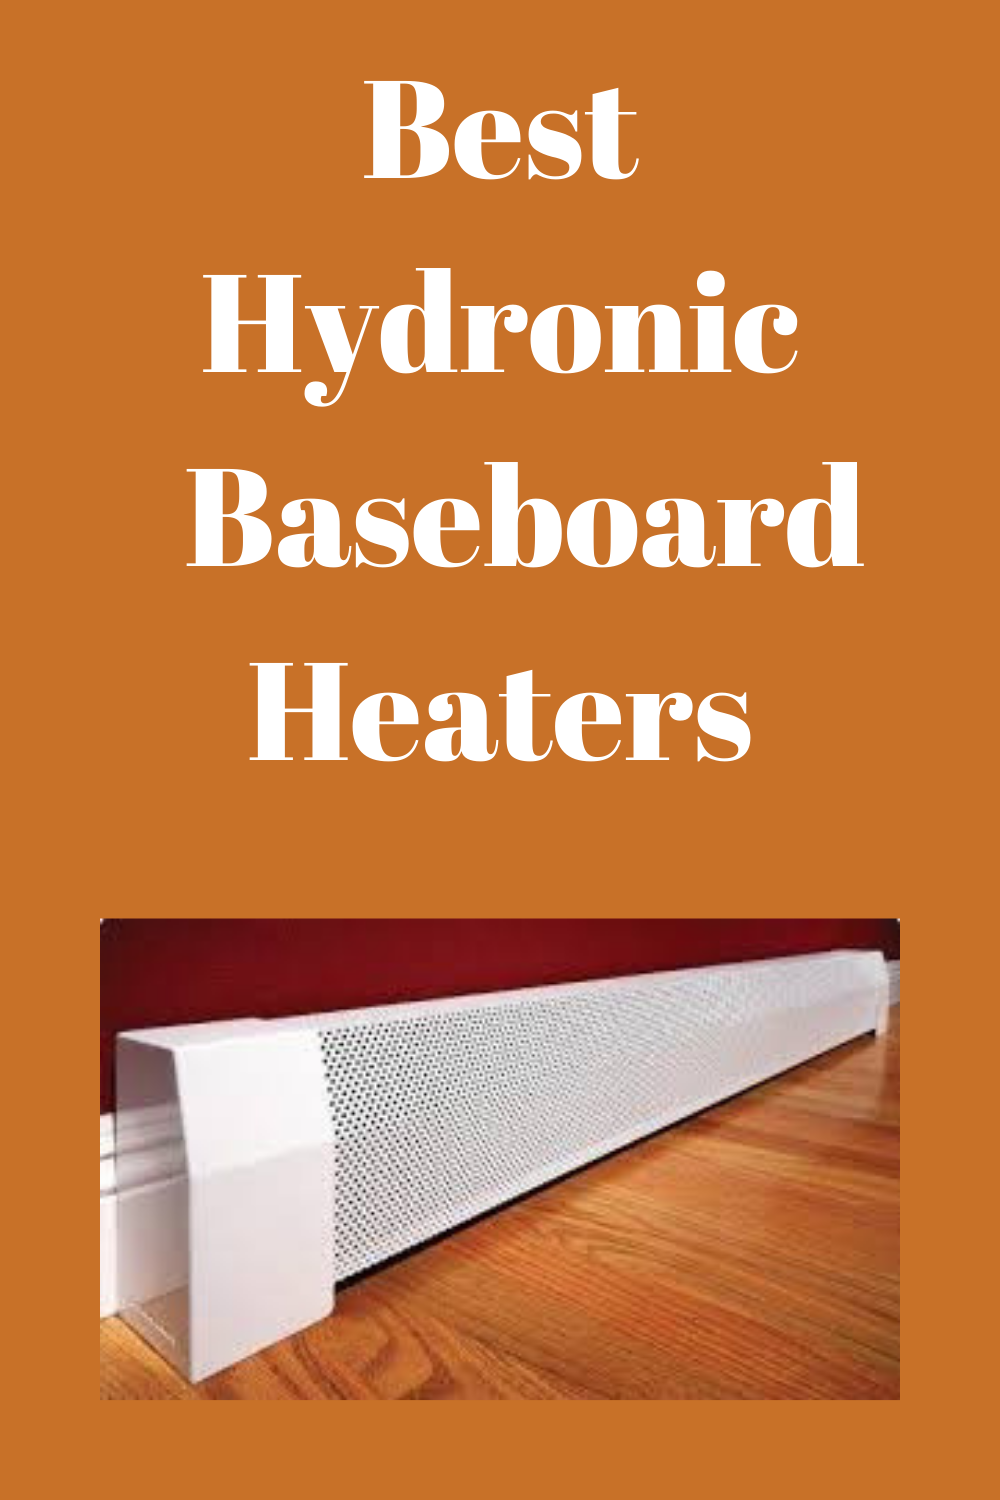 5 Best Hydronic Baseboard Heaters  Reviews And Guide 2020